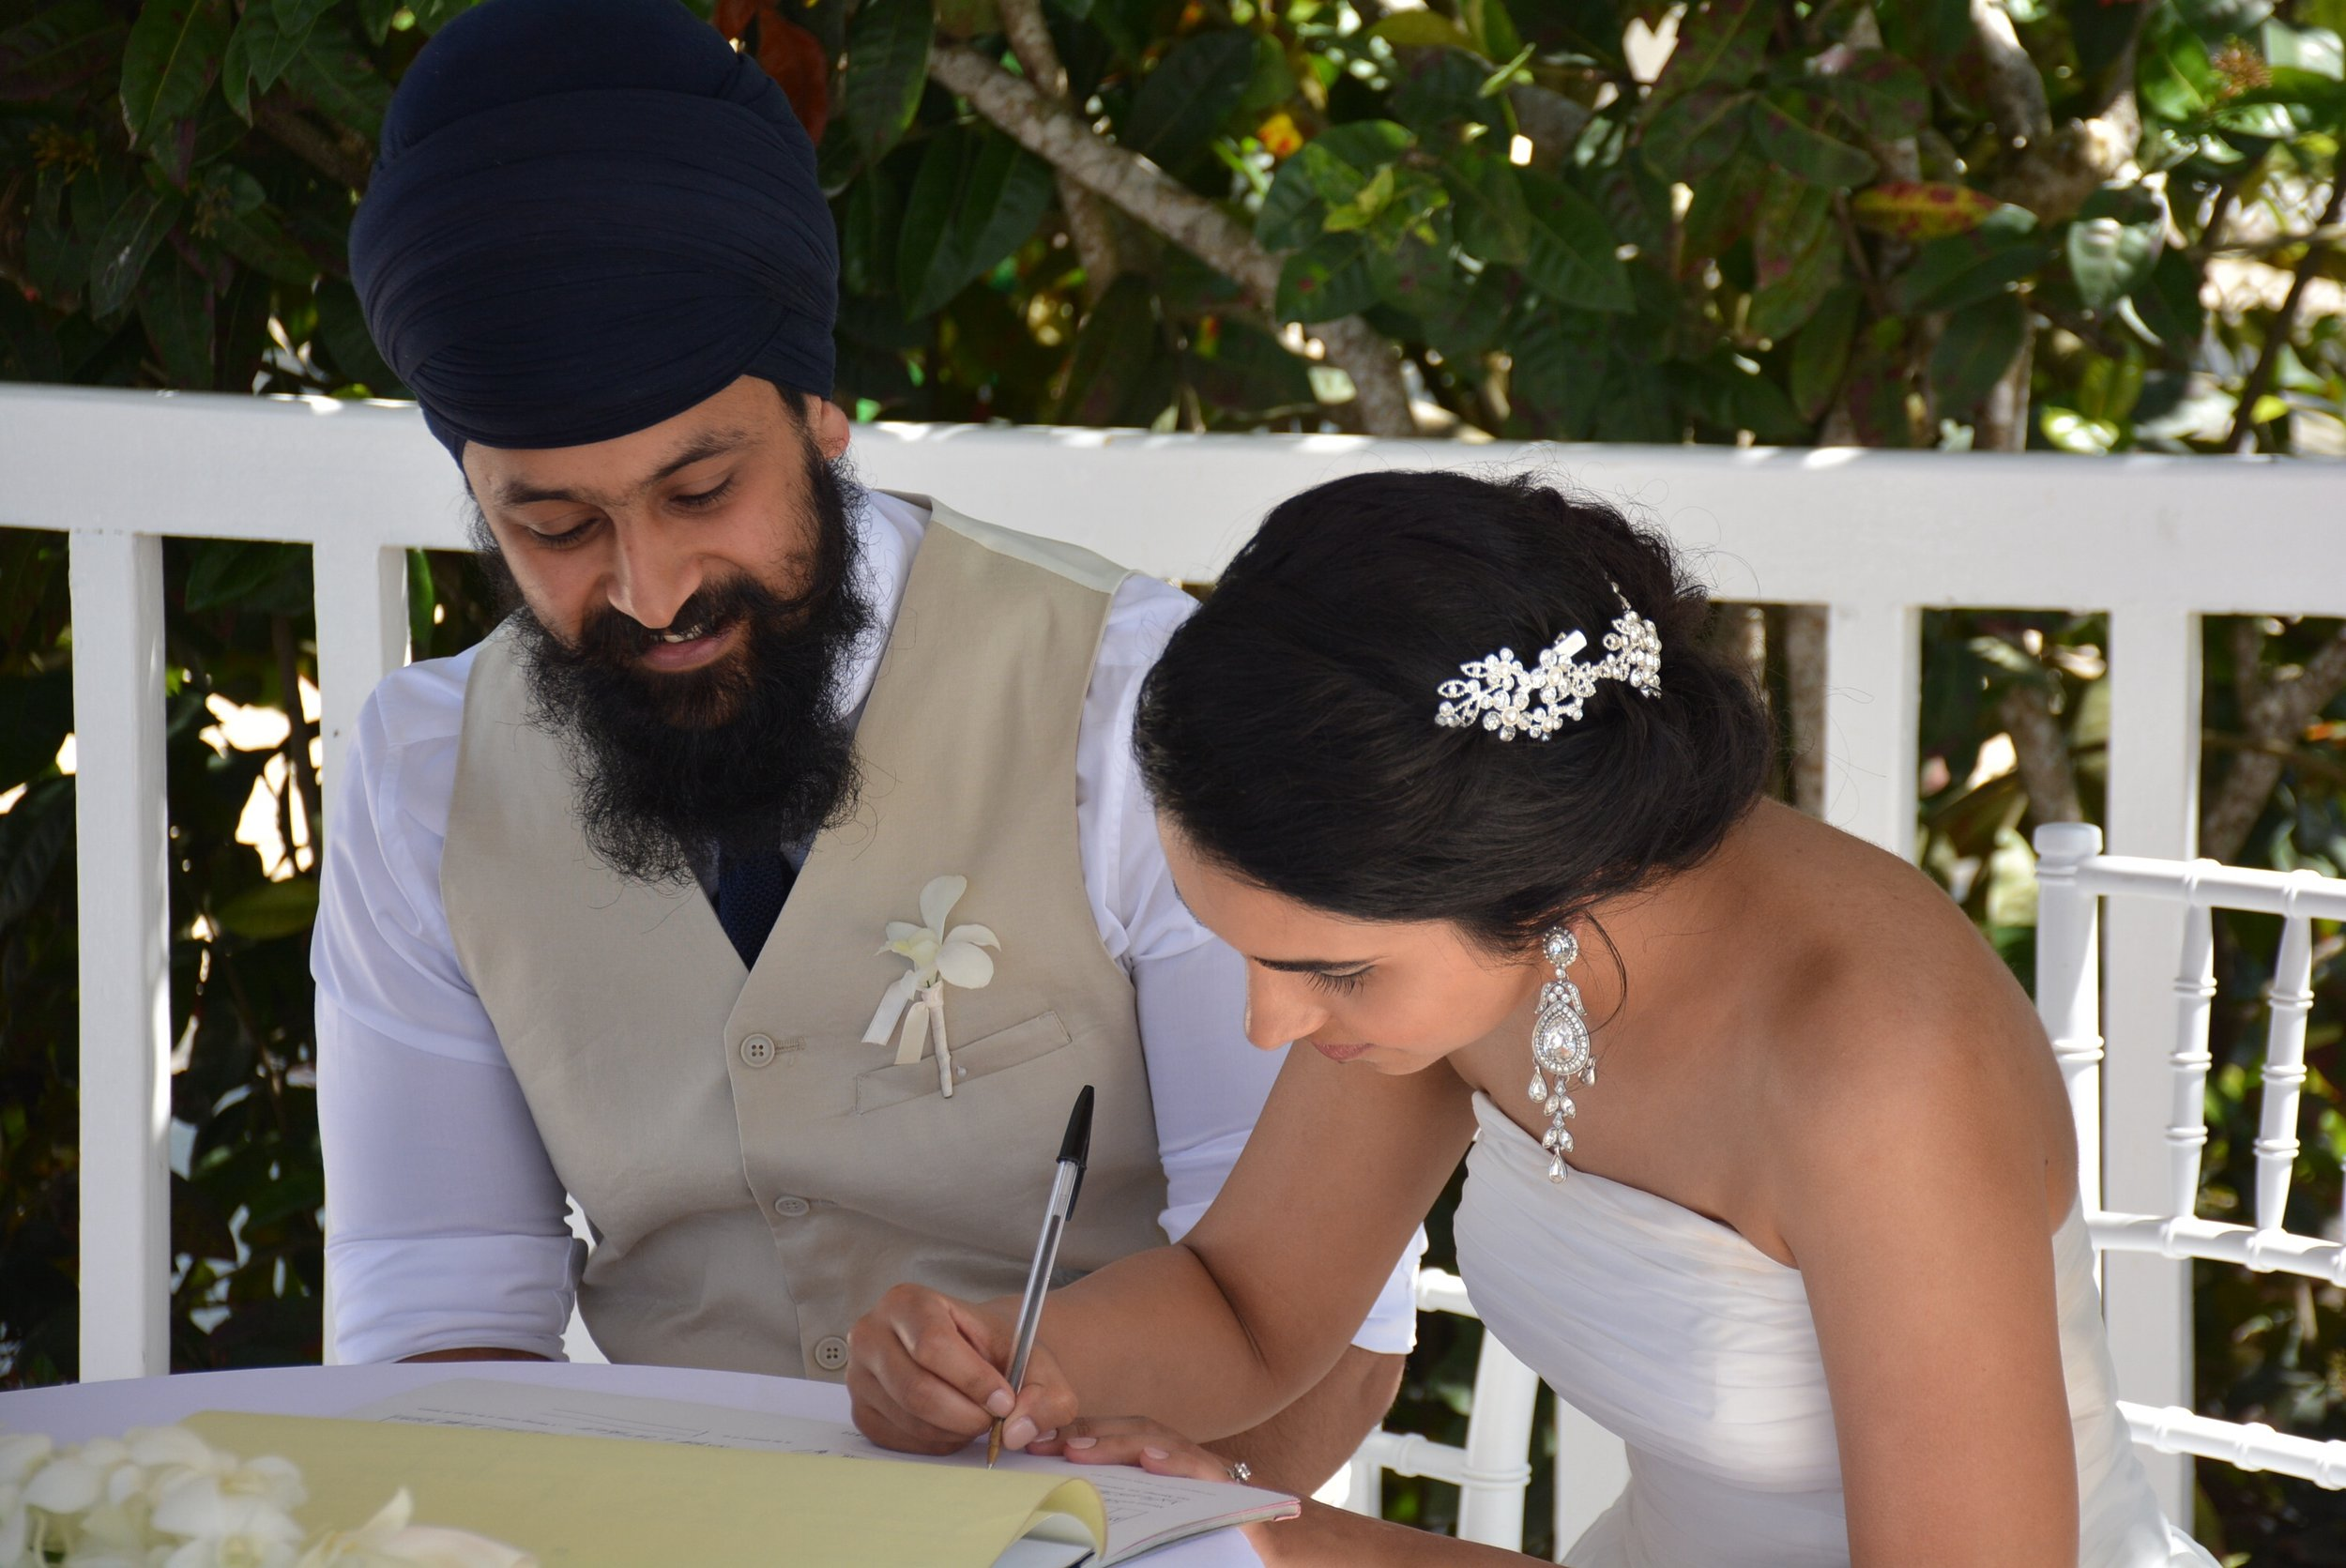 Signing the register. I vividly remember how my hand was trembling as I signed my name.